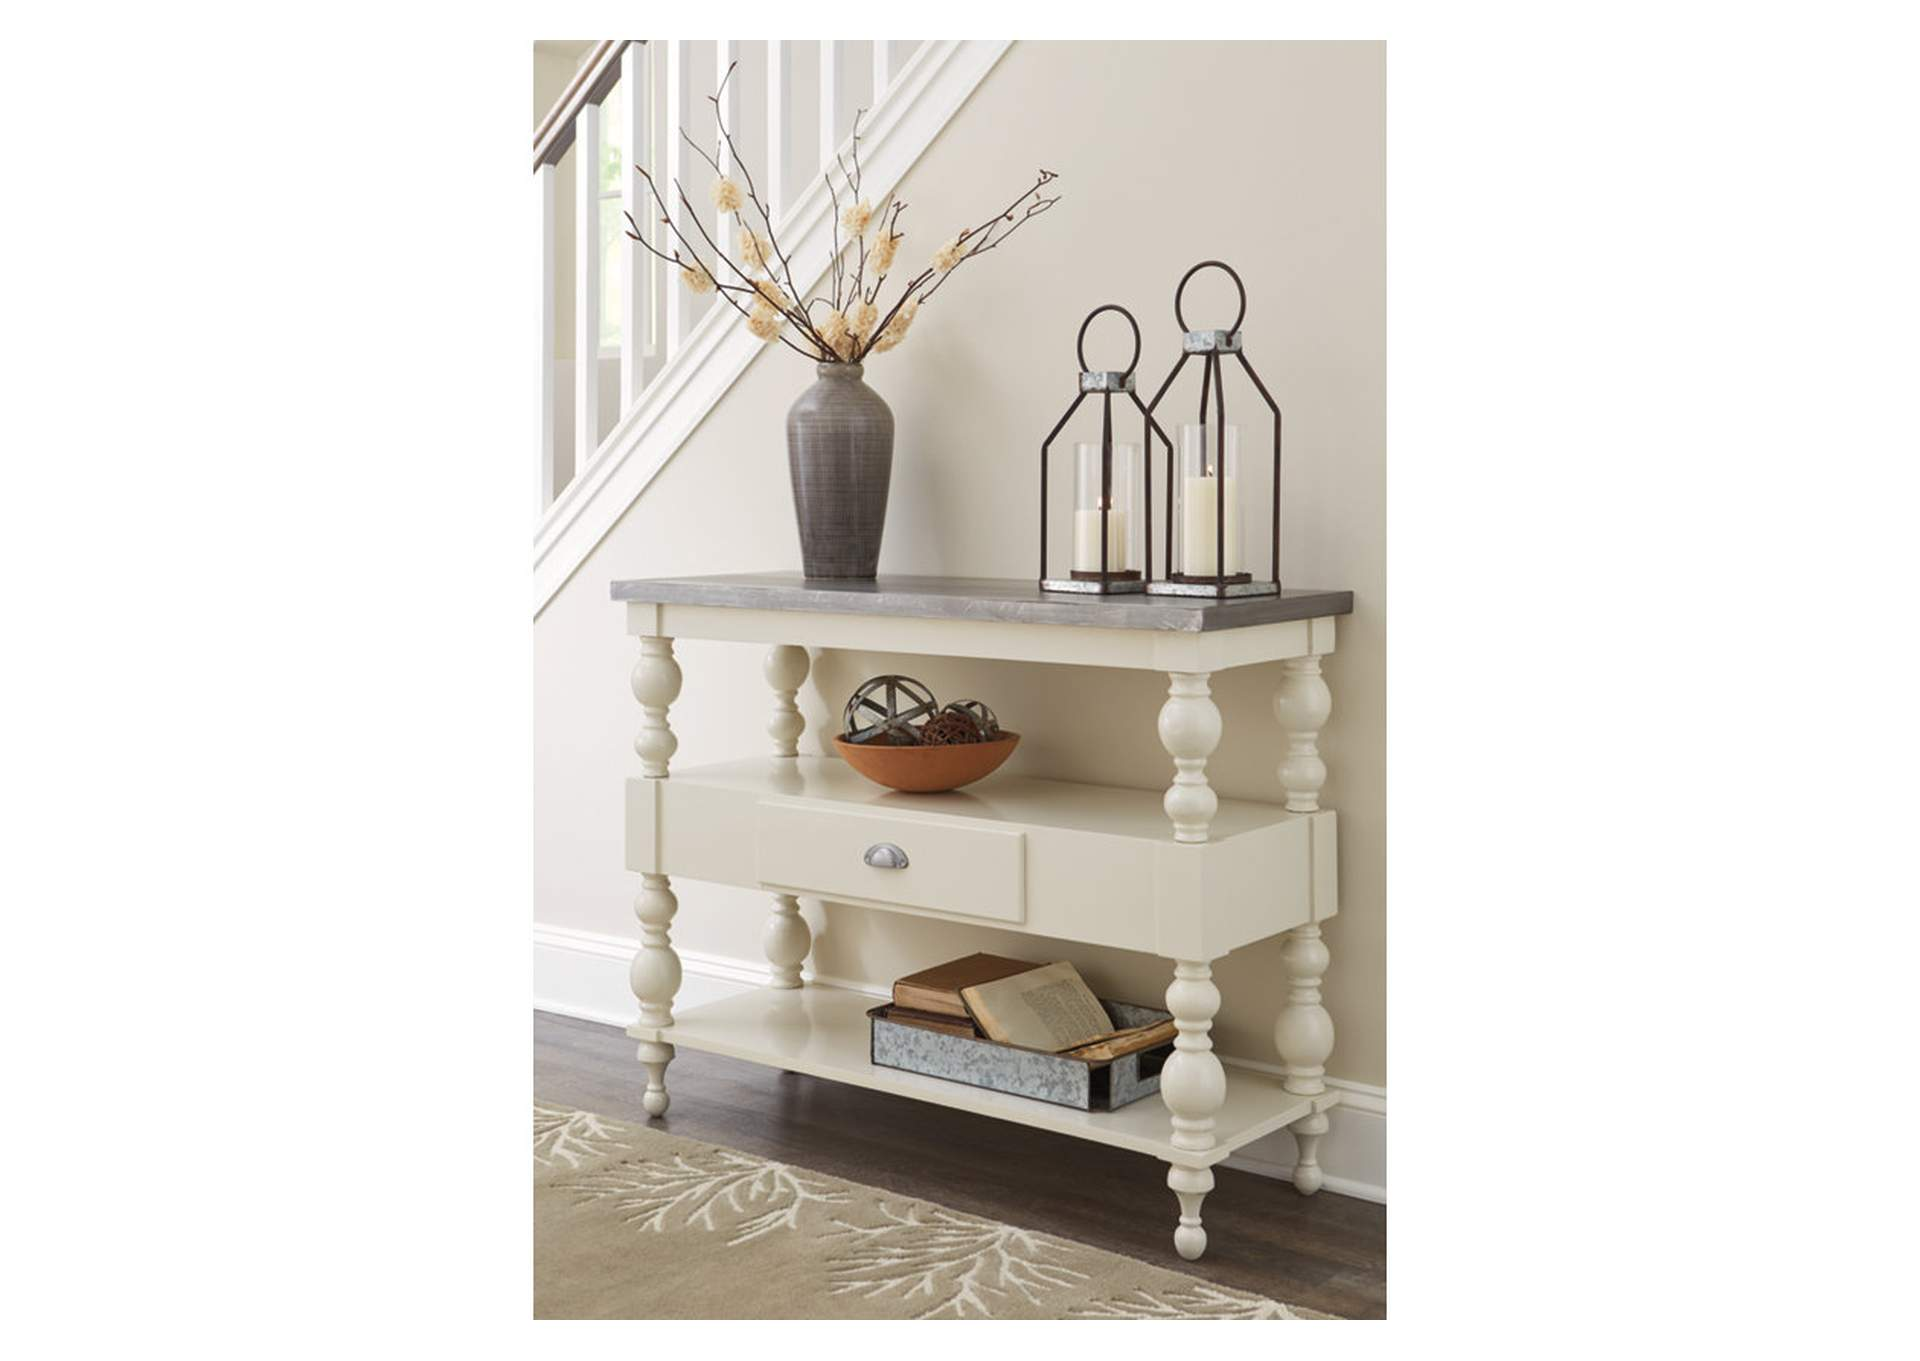 Fossil Ridge Antique White Console Sofa Table,Signature Design By Ashley